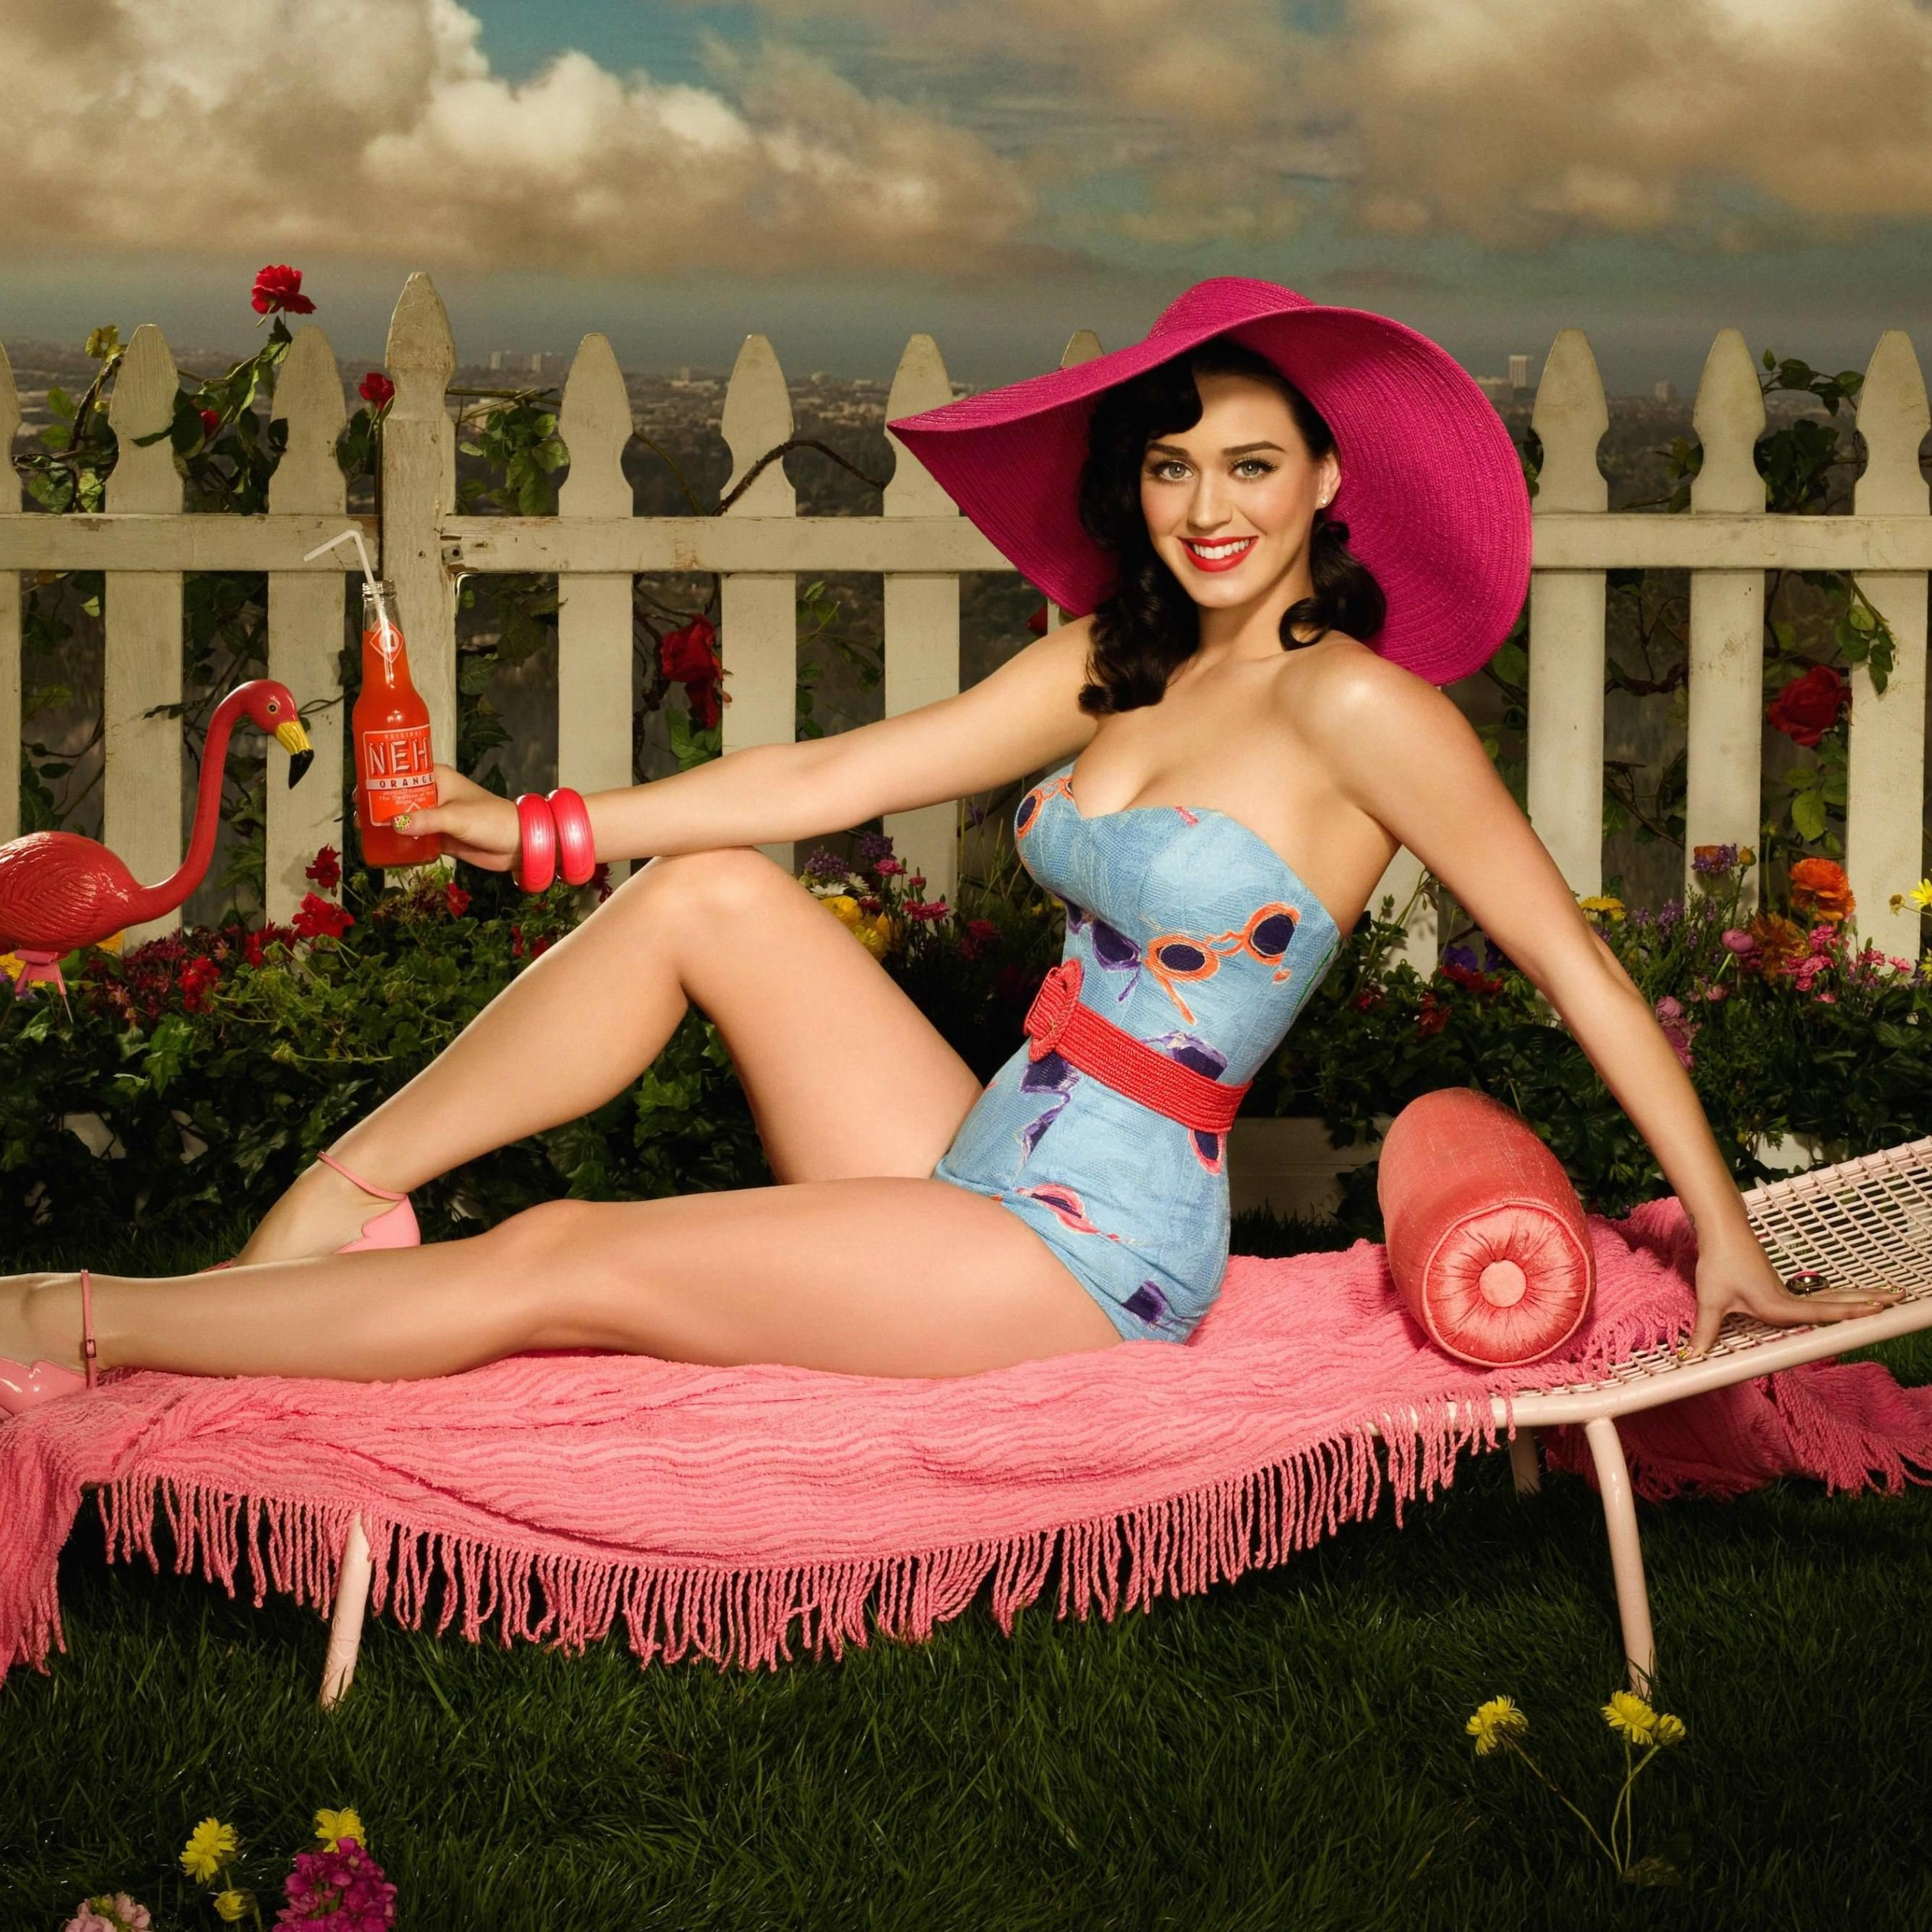 Katy Perry Lying On Chair Body Figure Wallpaper for Apple iPad mini 2